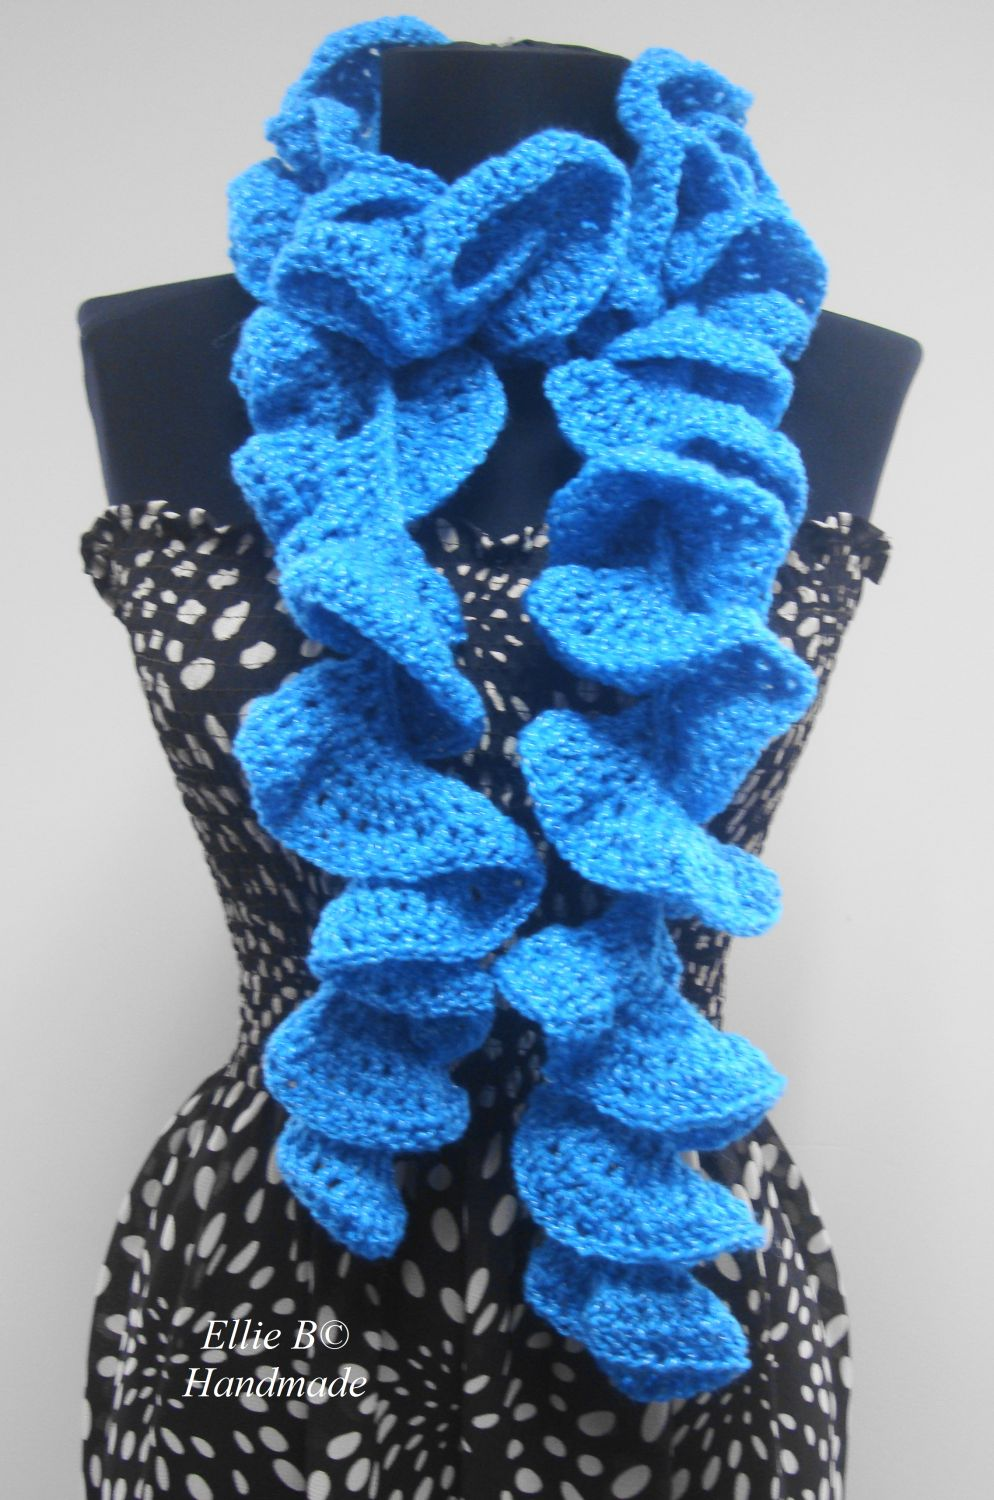 SPIRAL CROCHET SCARF How To Crochet